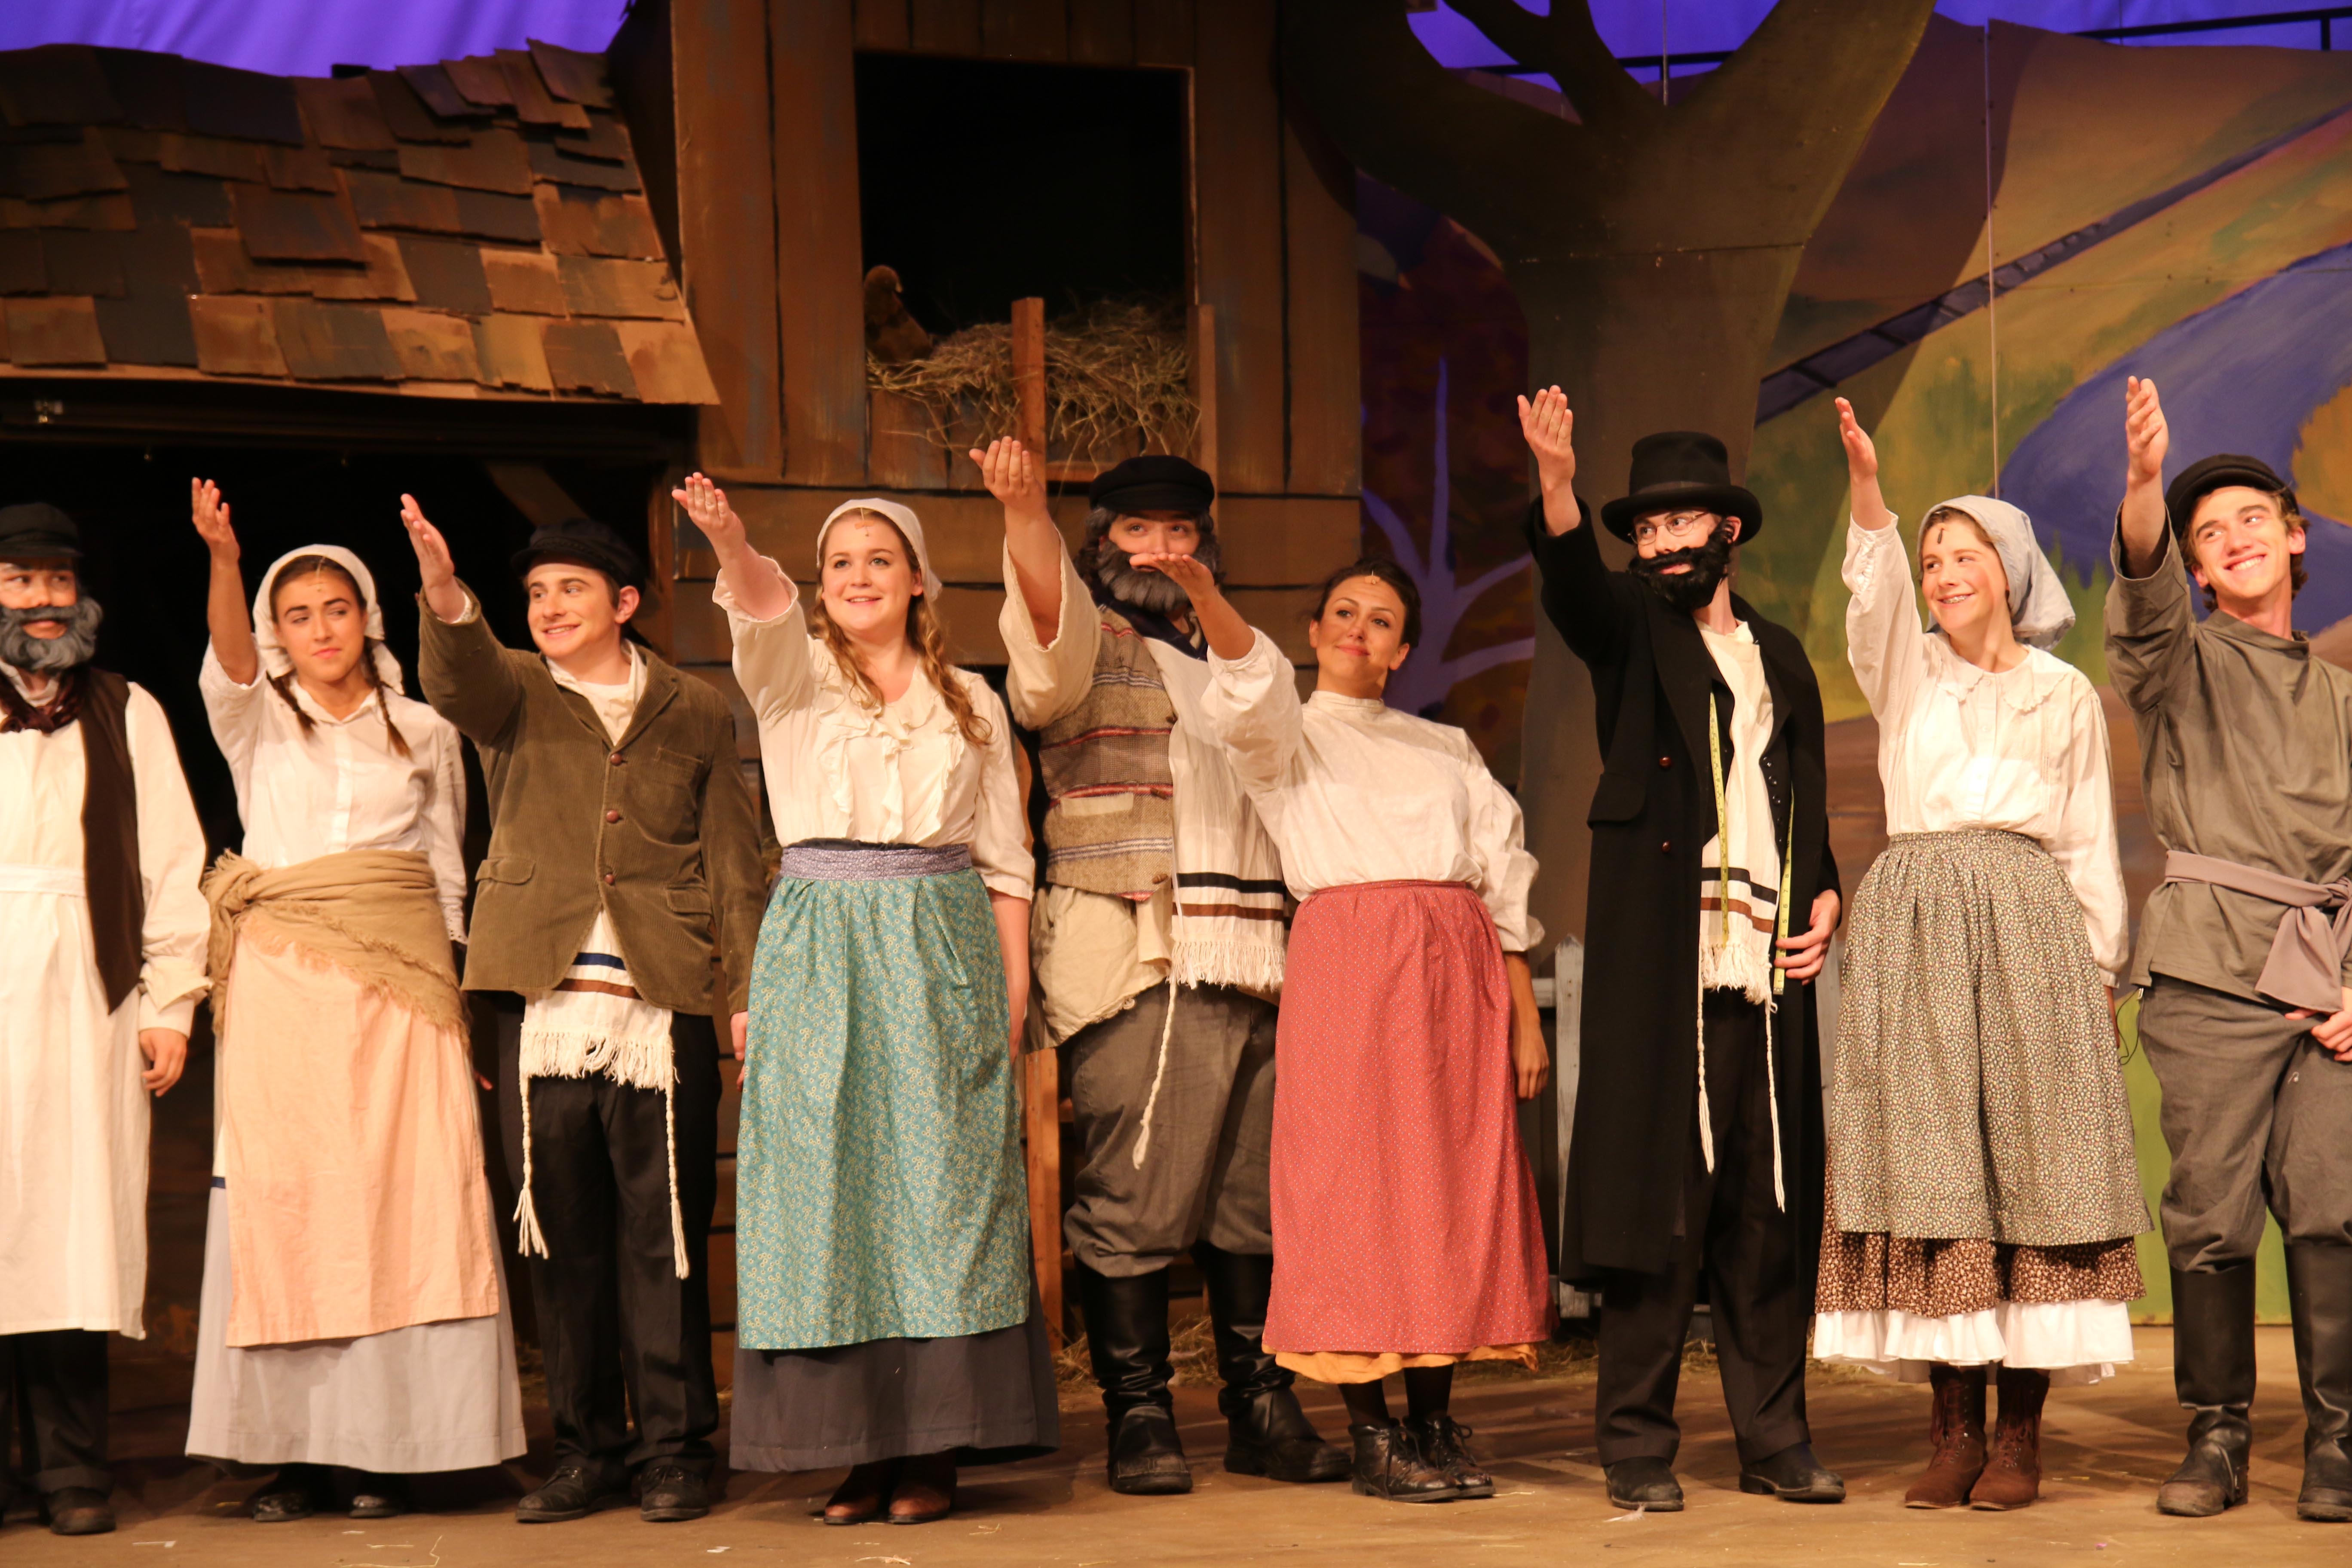 Proctor Arts Fiddler On The Roof